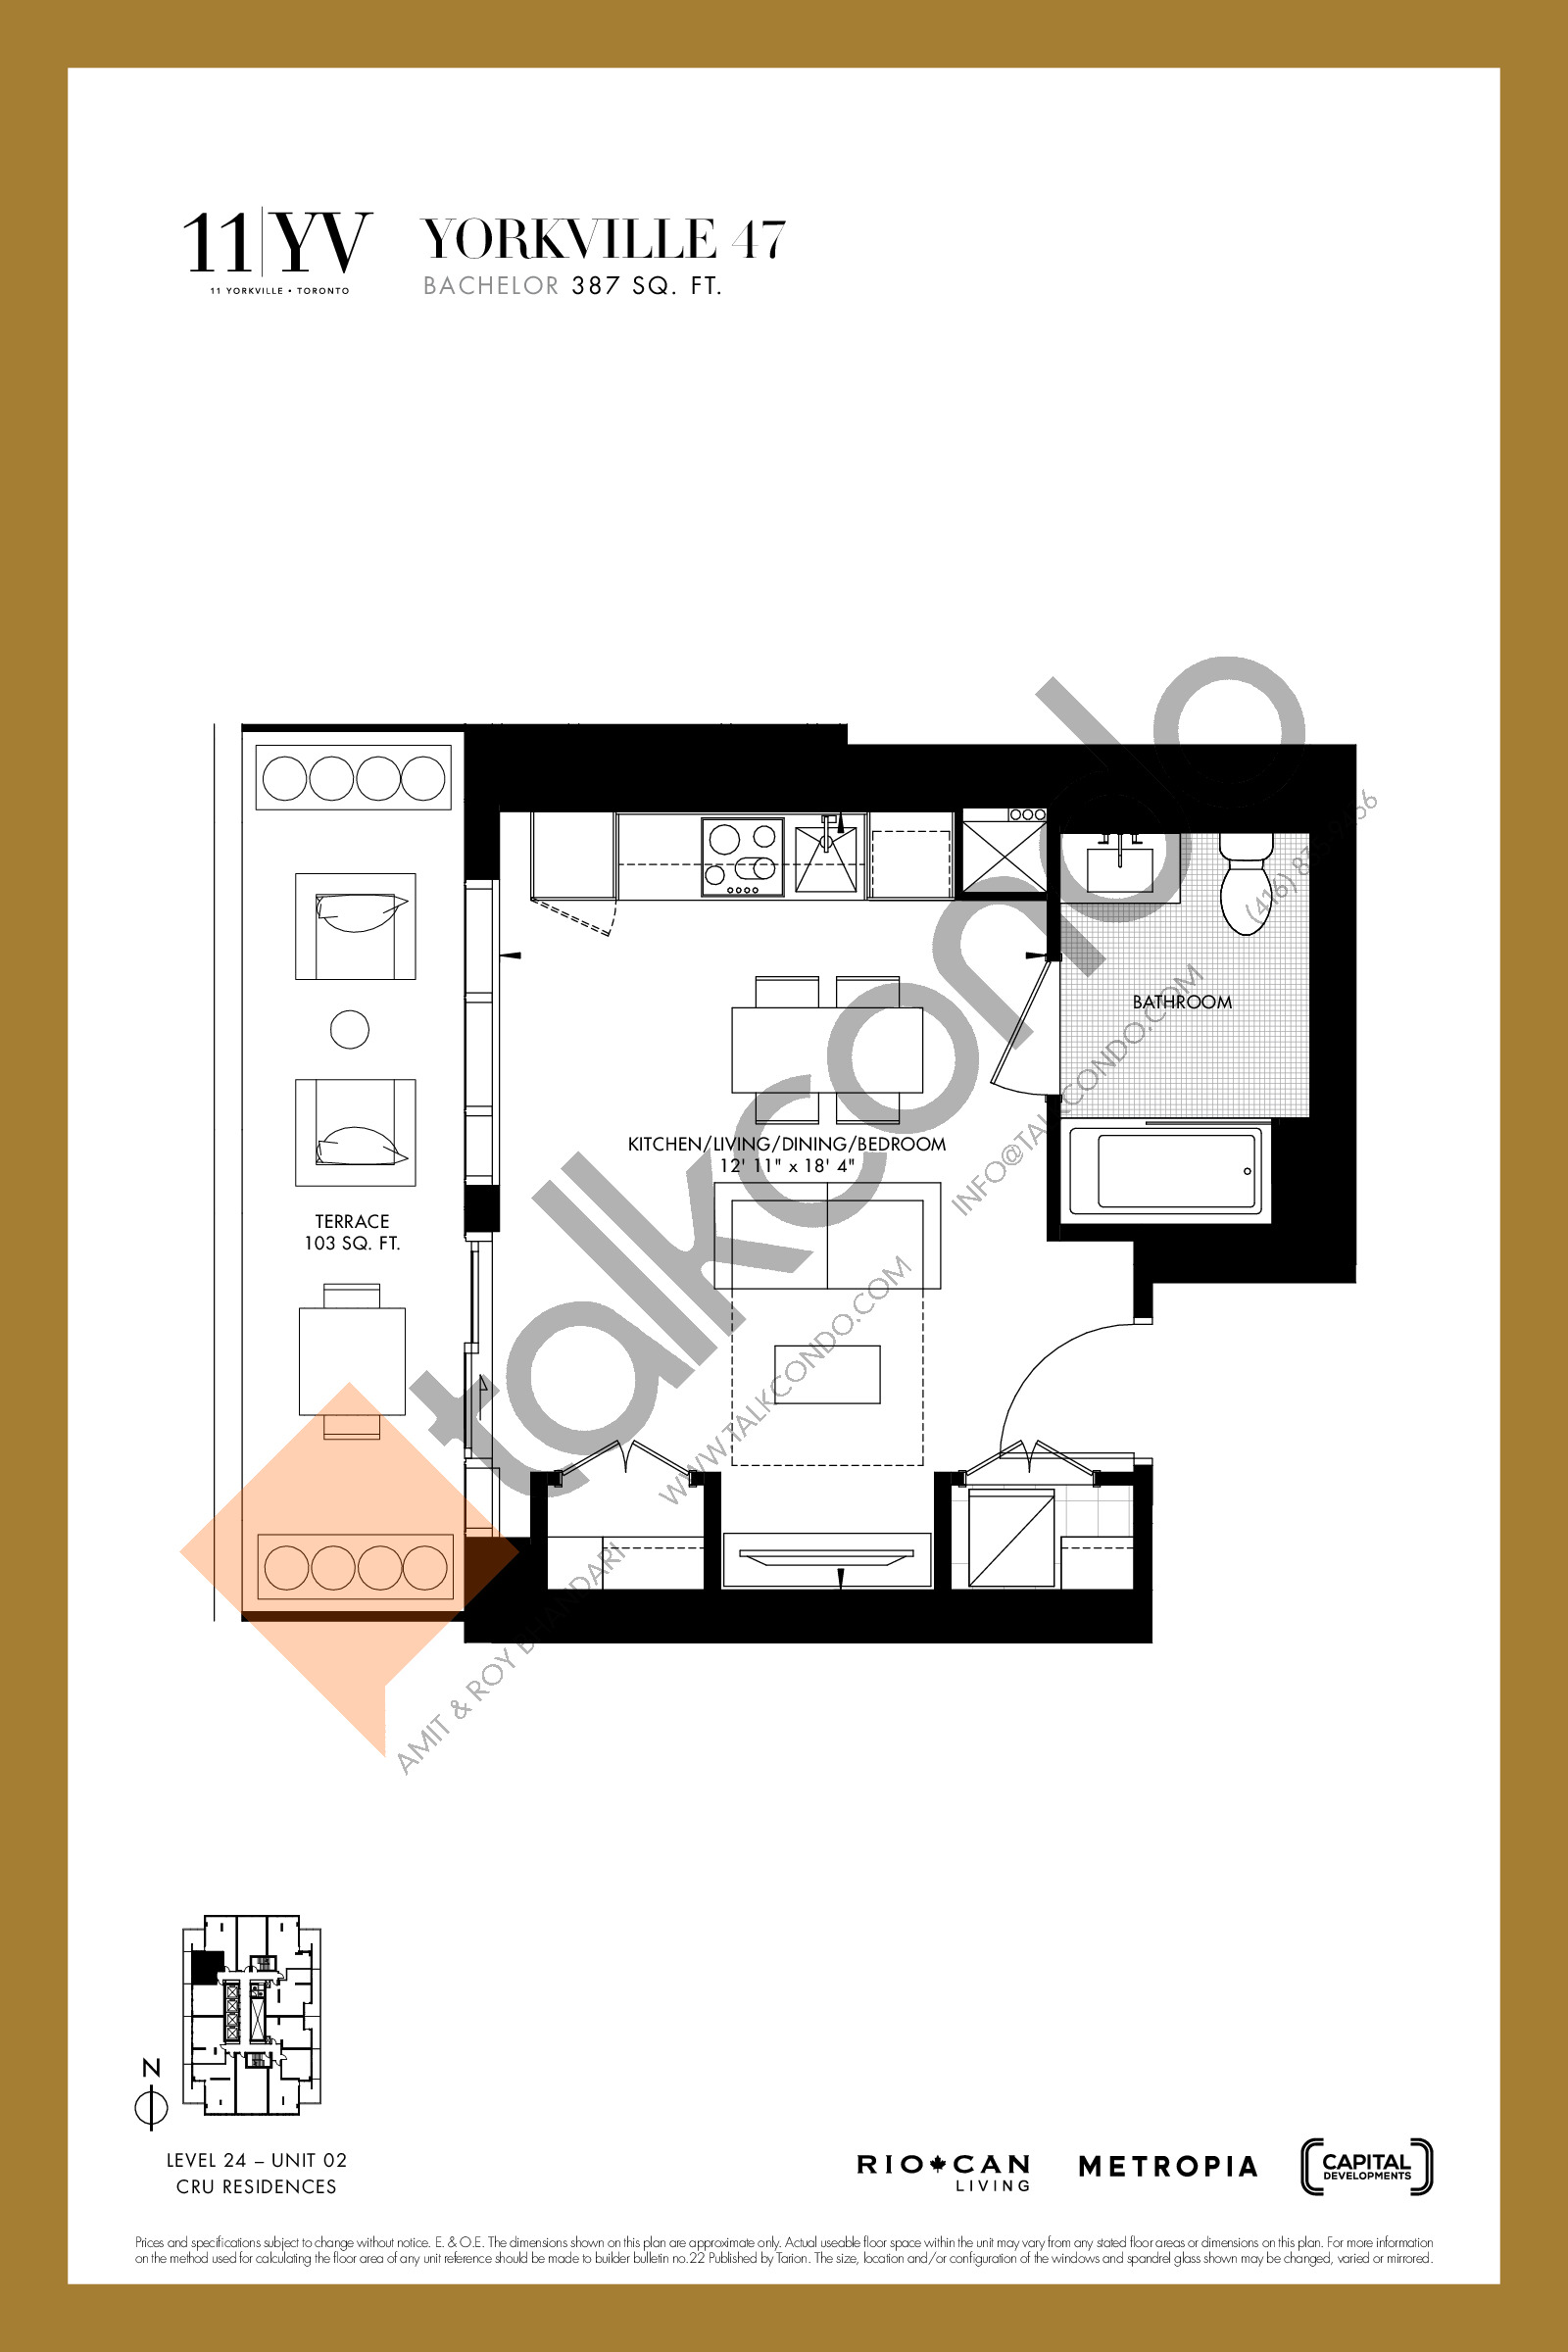 Yorkville 47 Floor Plan at 11YV Condos - 387 sq.ft